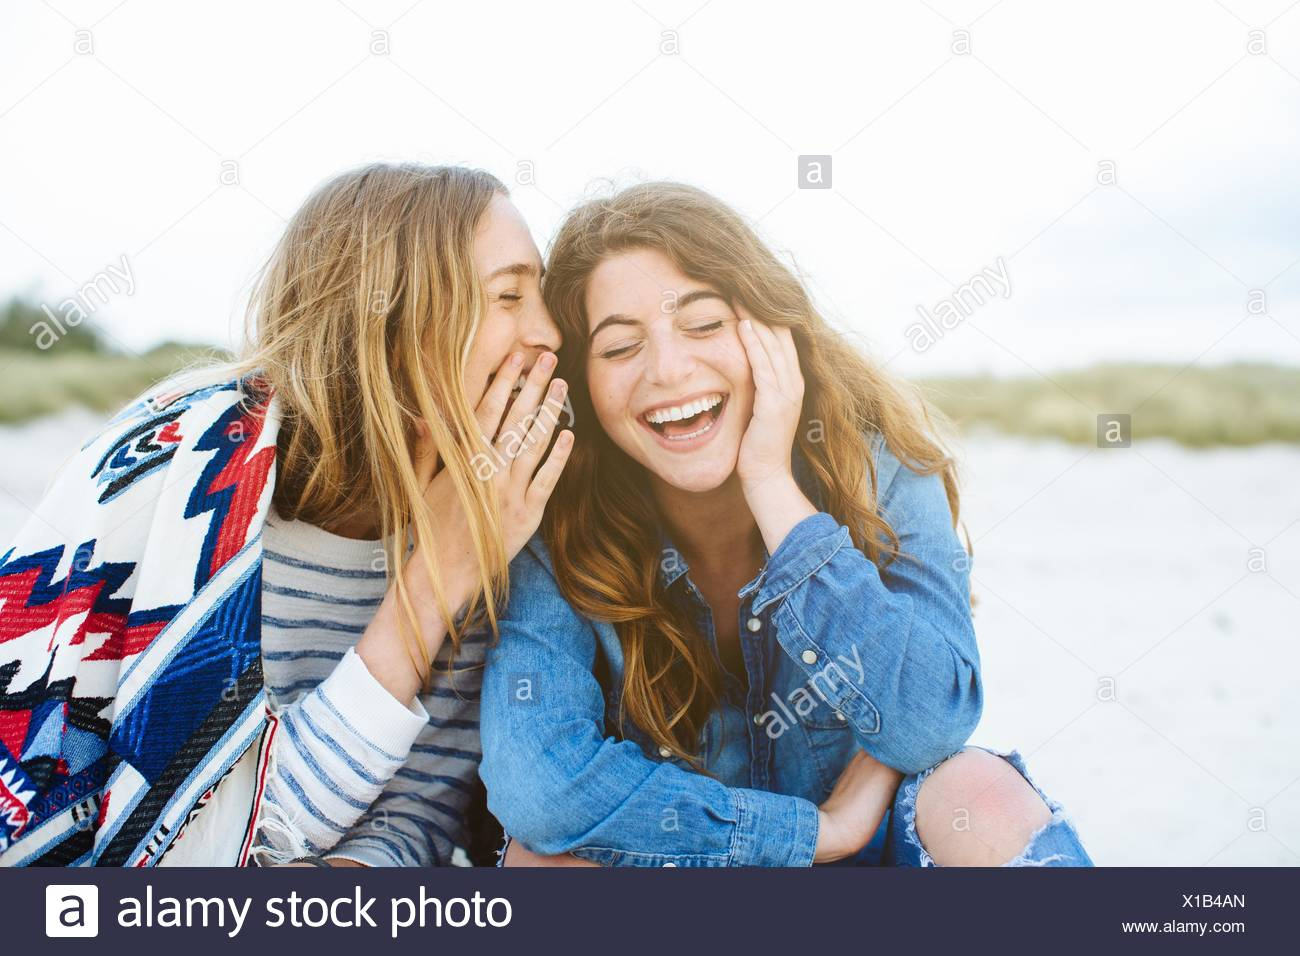 Two young female friends whispering on beach - Stock Image